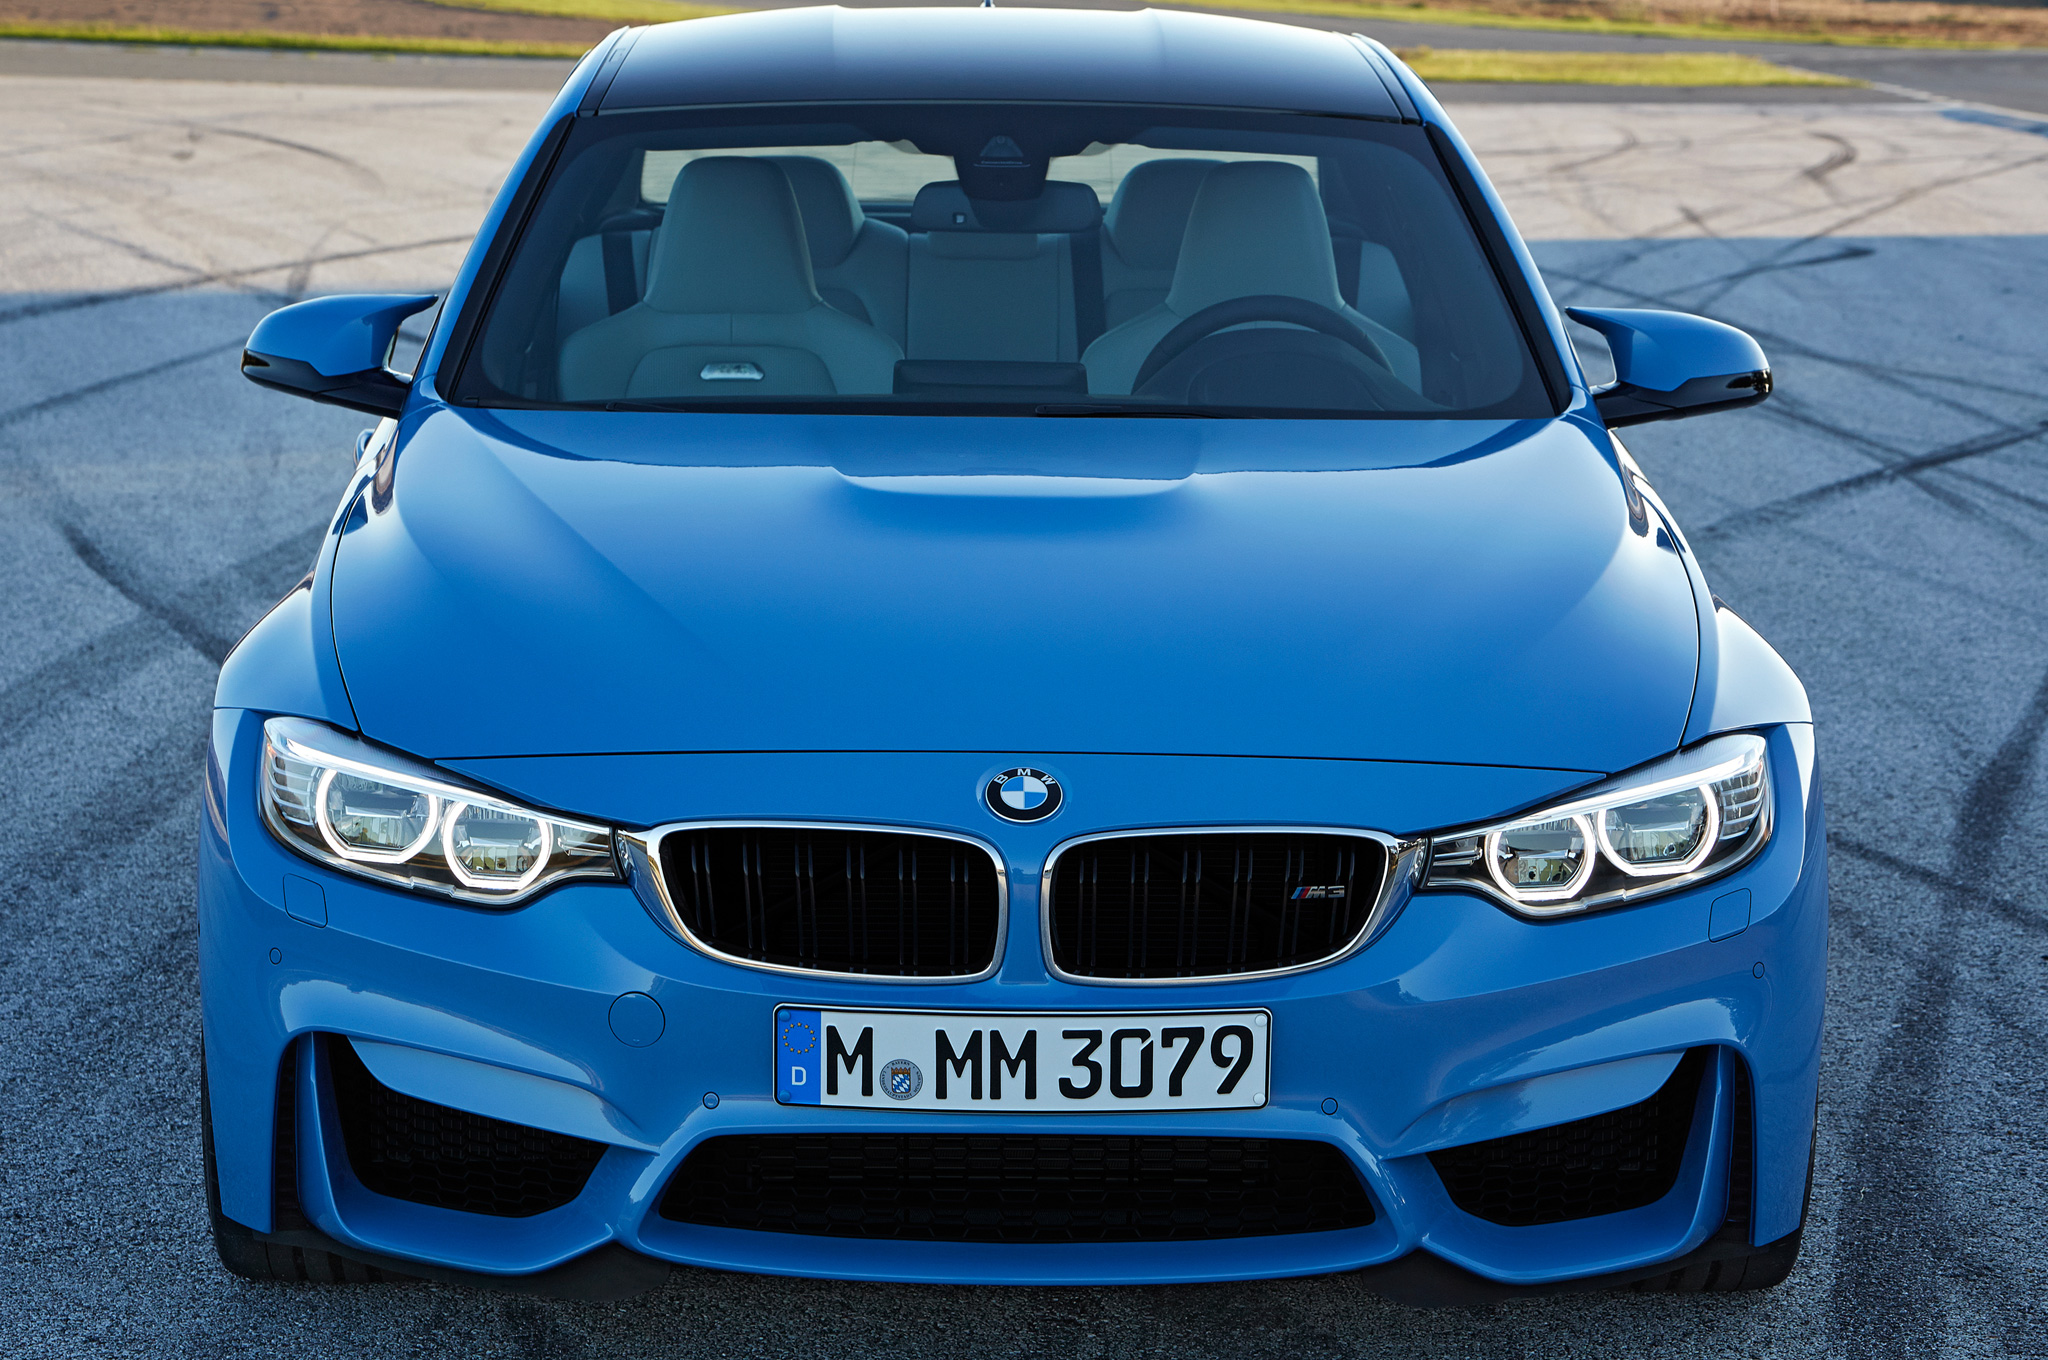 2015 Bmw M3 Front Design Close Up (Photo 45 of 55)